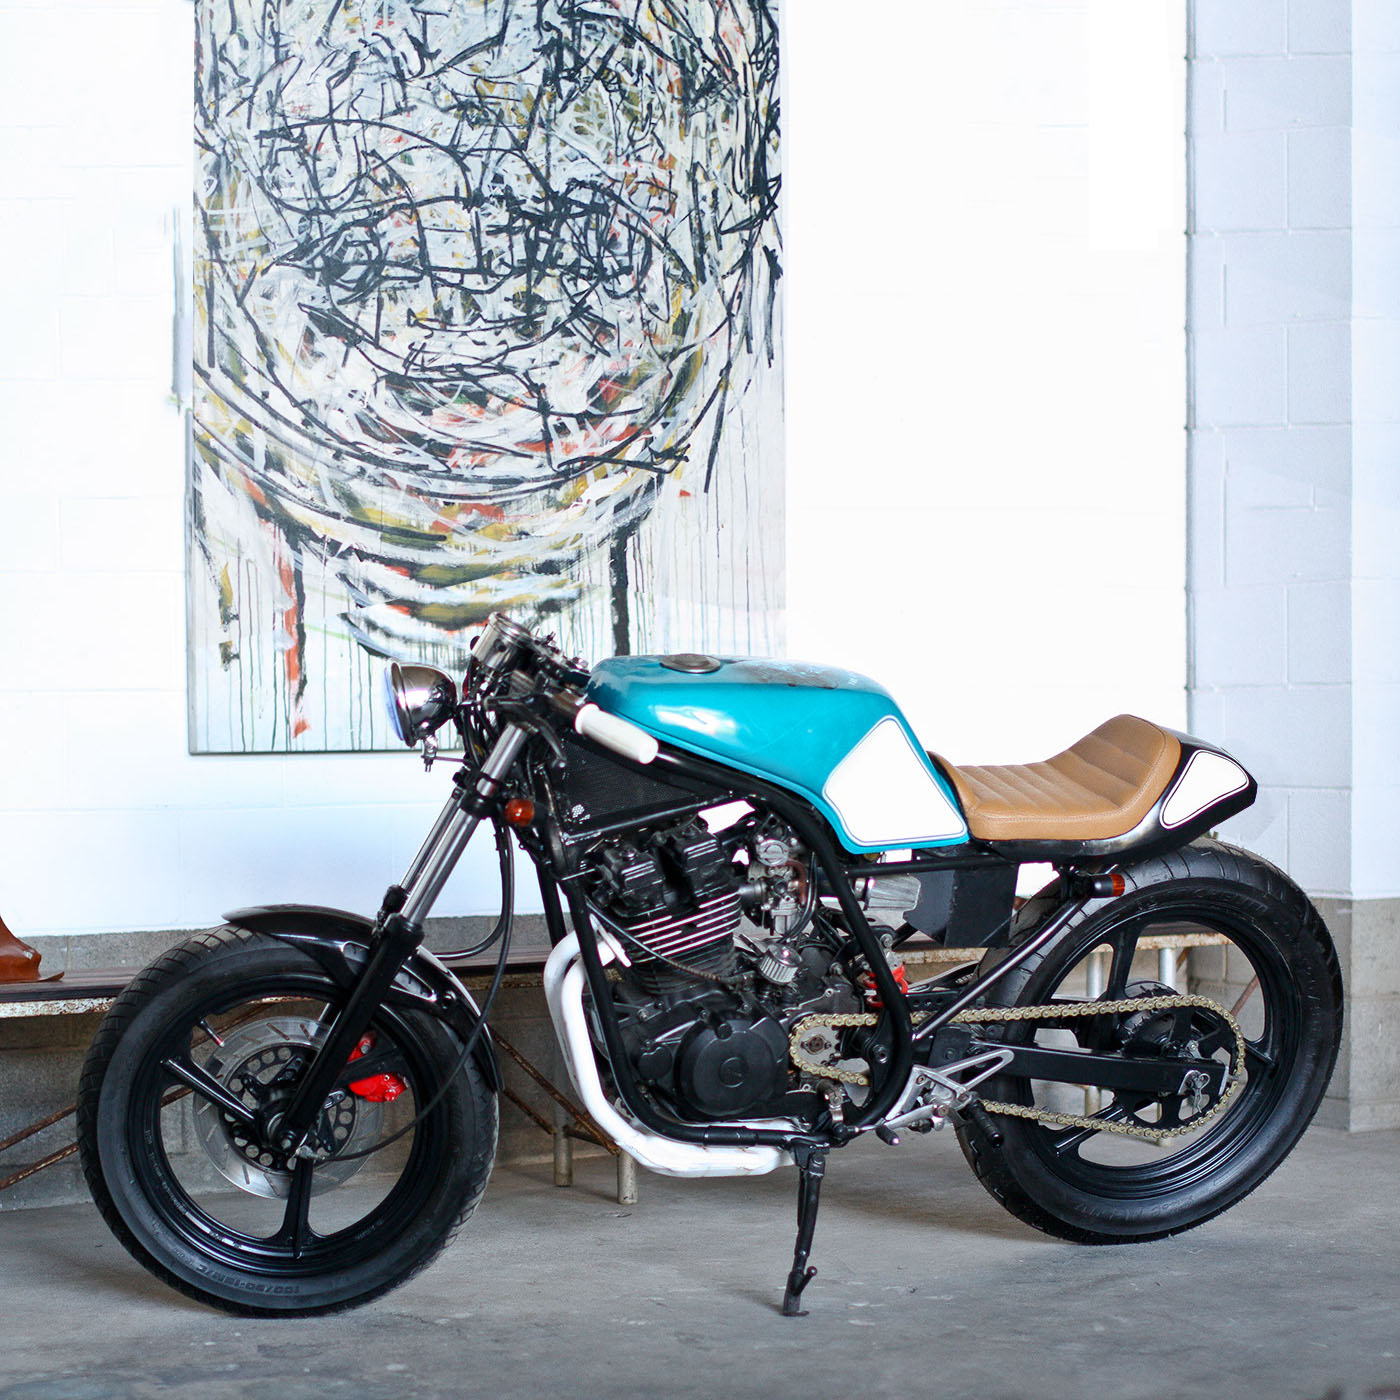 Lane Splitter: The Experiment - Yamaha SRX250 Cafe Racer